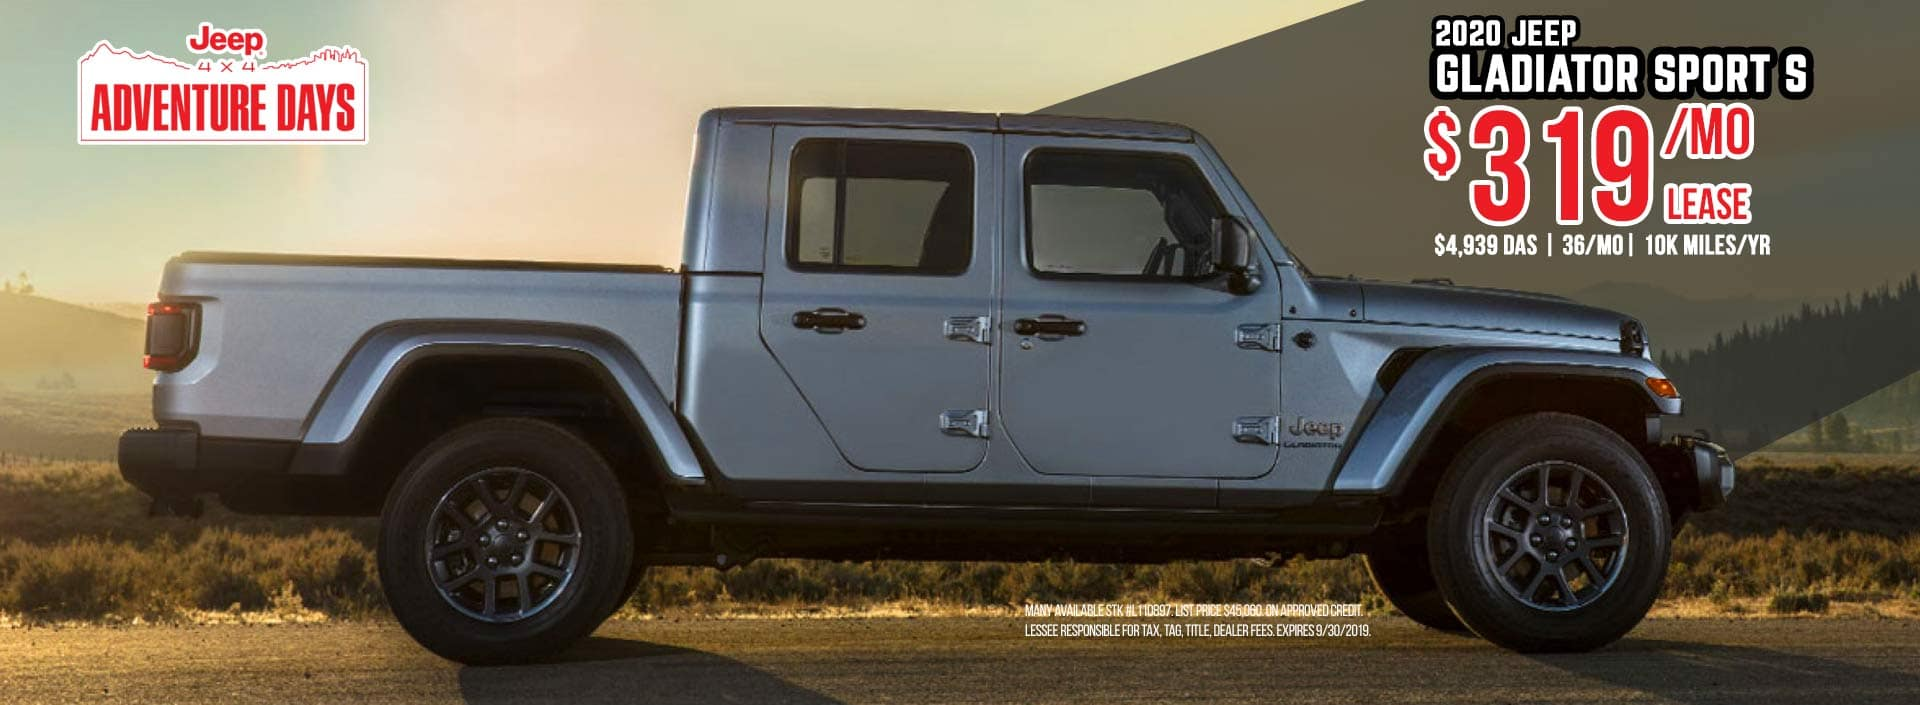 Jeep Gladiator Sale